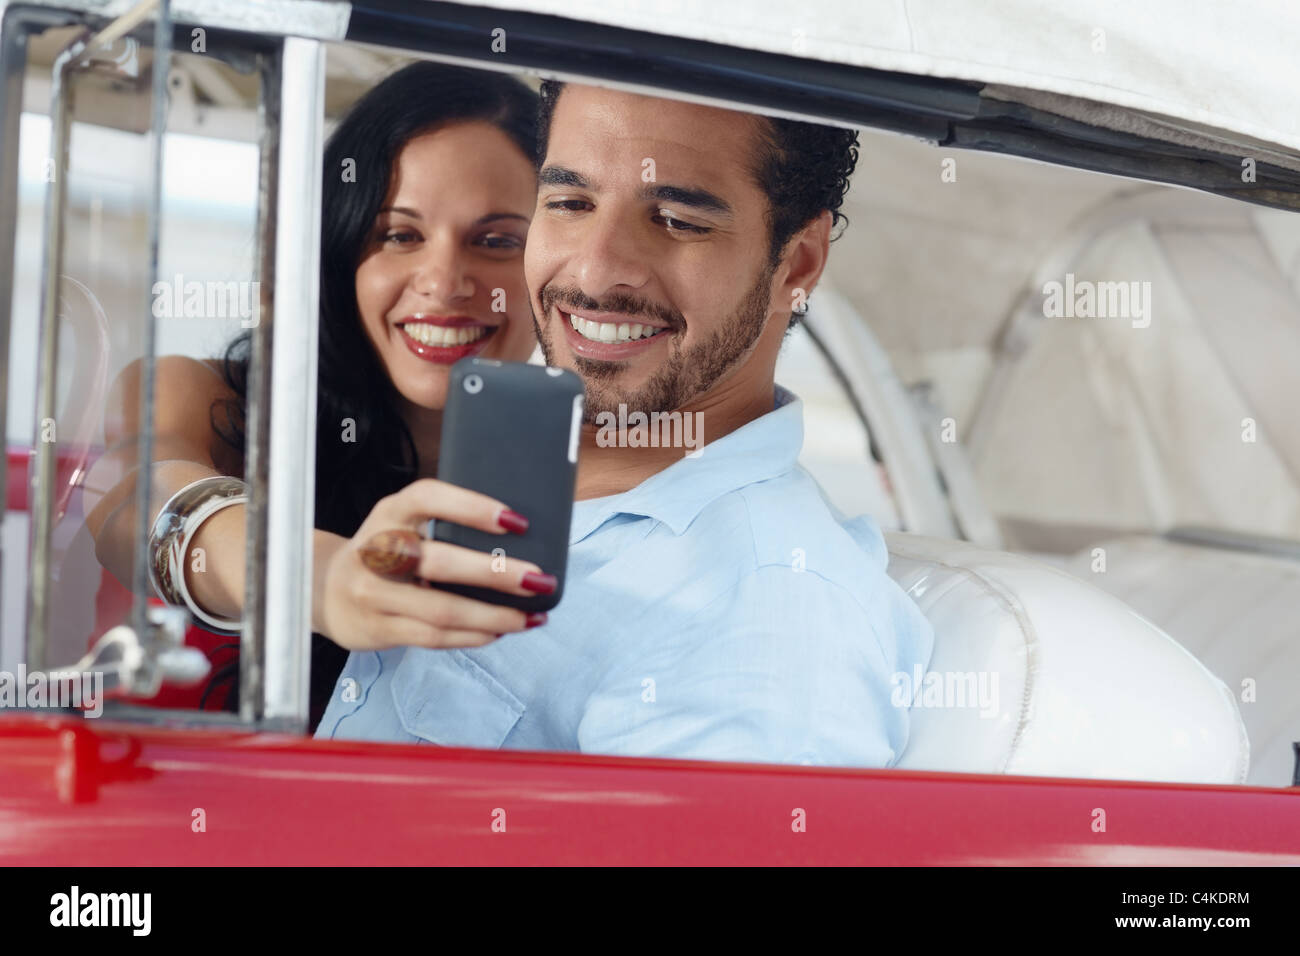 happy young man and woman smiling while taking snapshot with cell phone camera from red vintage convertible car - Stock Image